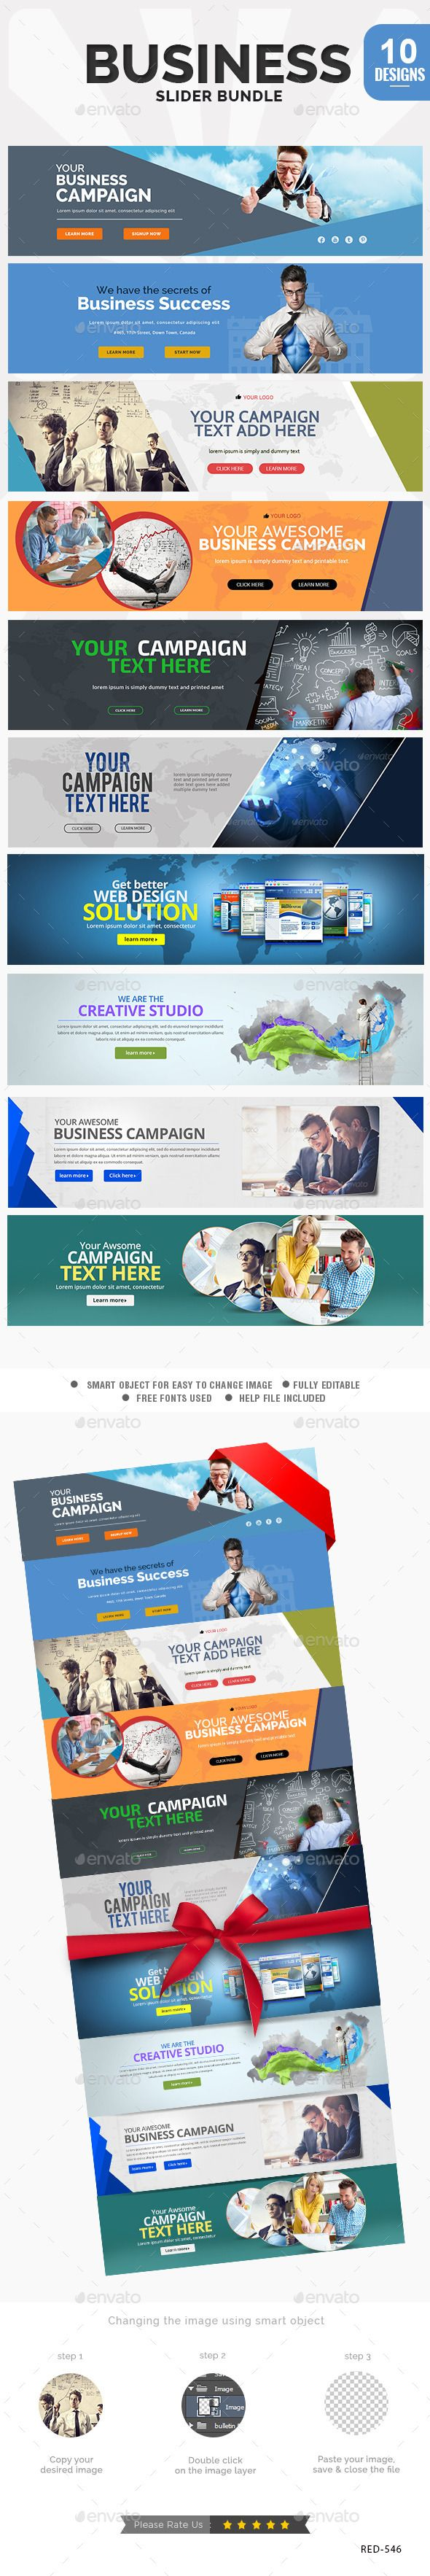 Business Sliders Bundle - 10 Designs Template PSD. Download here: http://graphicriver.net/item/business-sliders-bundle-10-designs/12618990?ref=ksioks